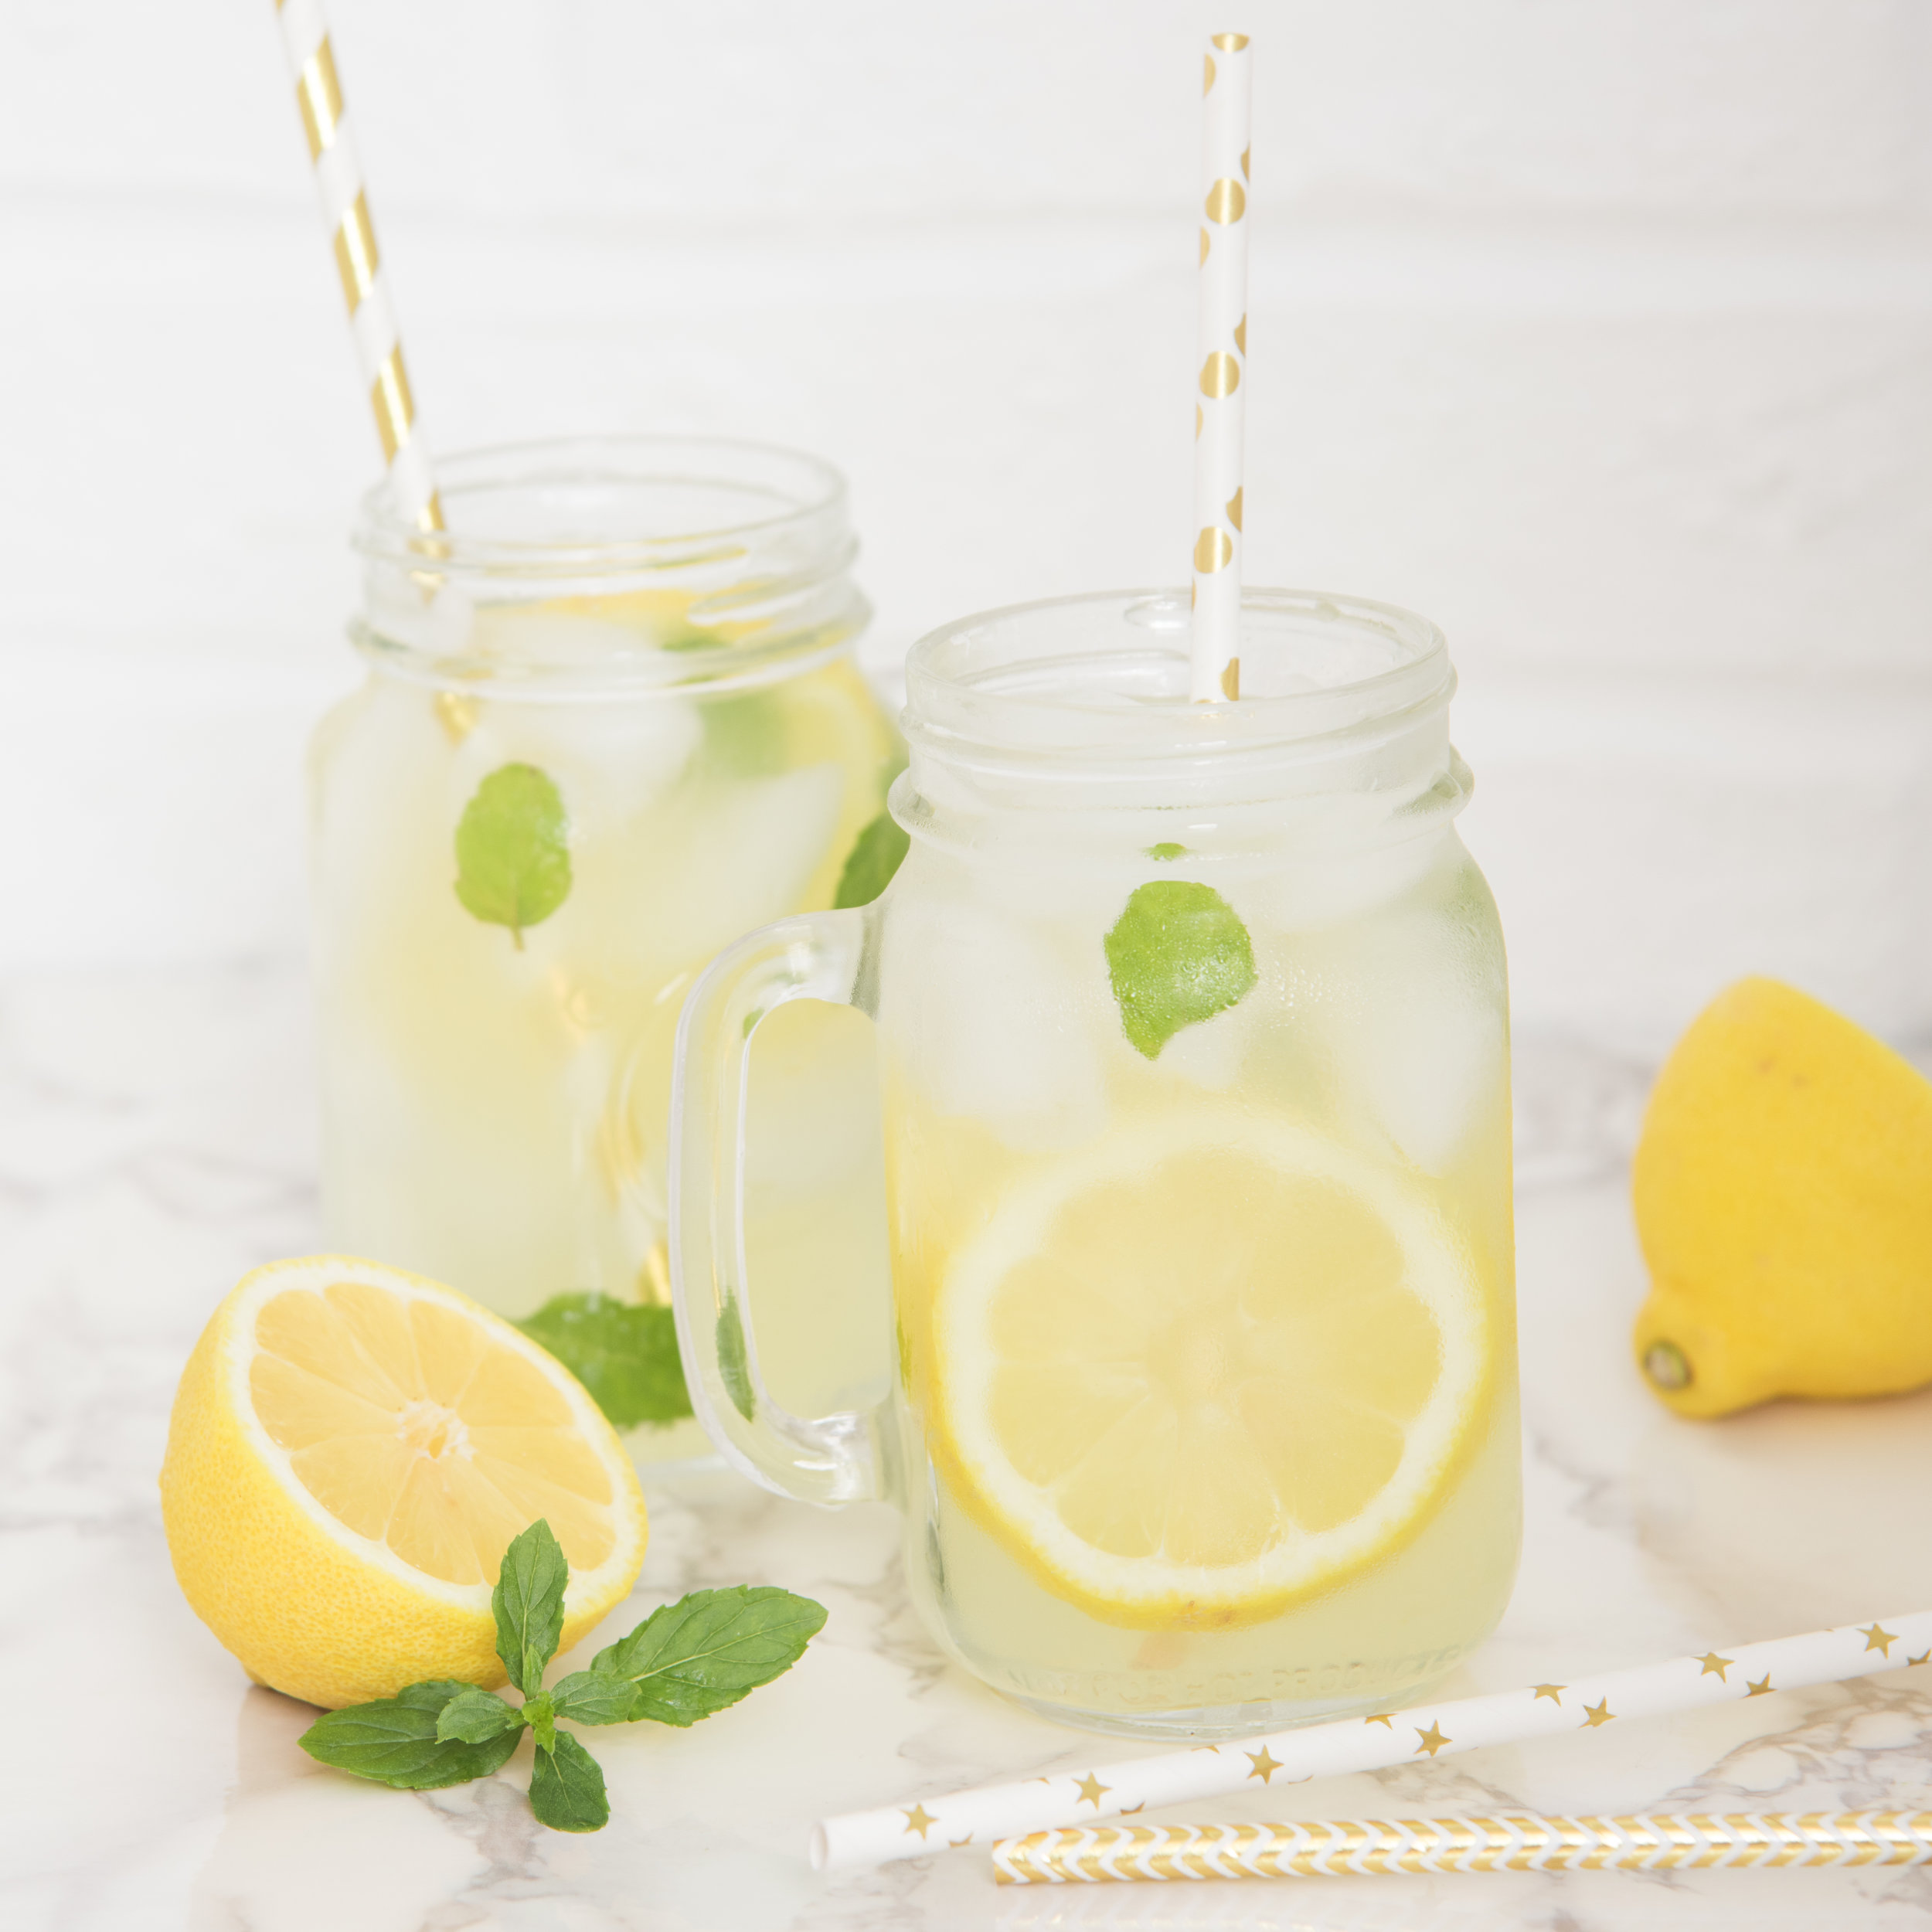 LemonadeDayFreebie_ElenaSloup.jpg